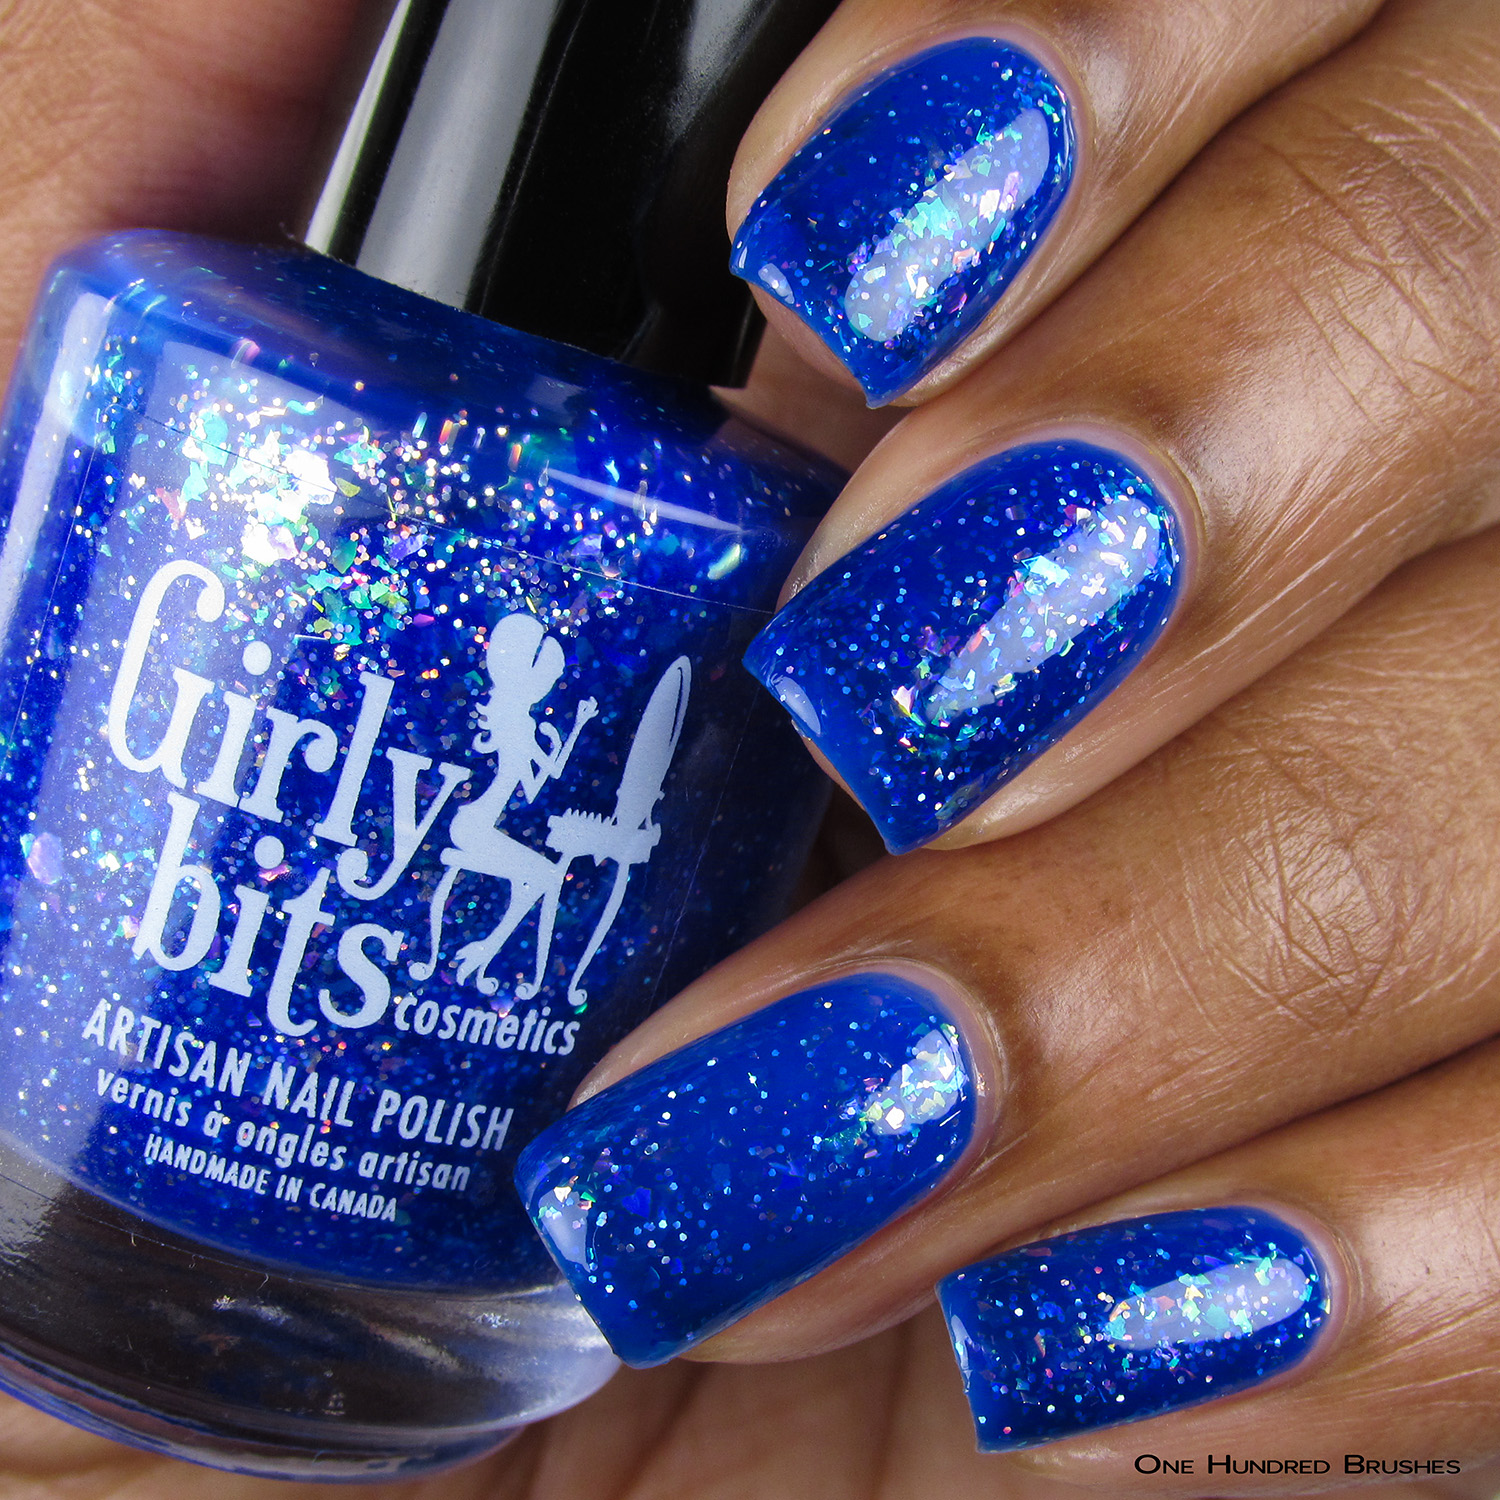 Pixie Tricks - Bottle Front - Girly Bits - July HHC